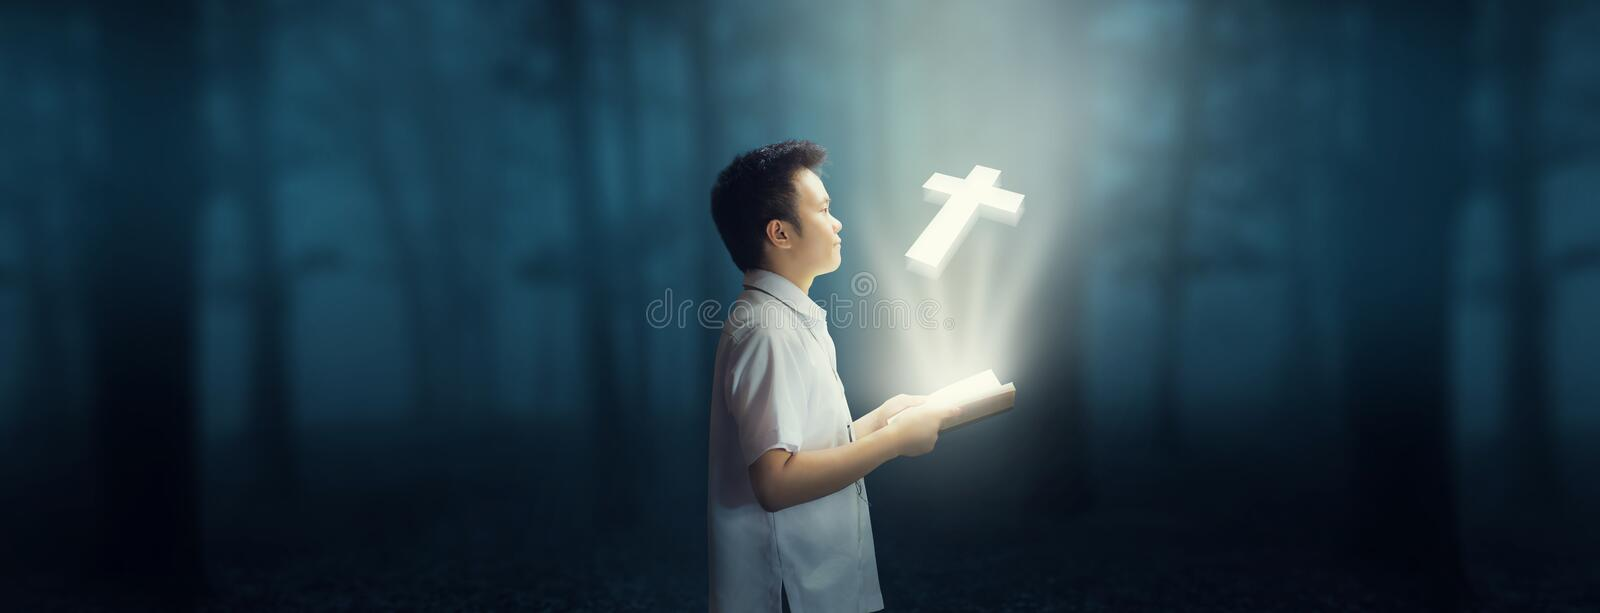 Reading the bible and faith in God. royalty free stock images